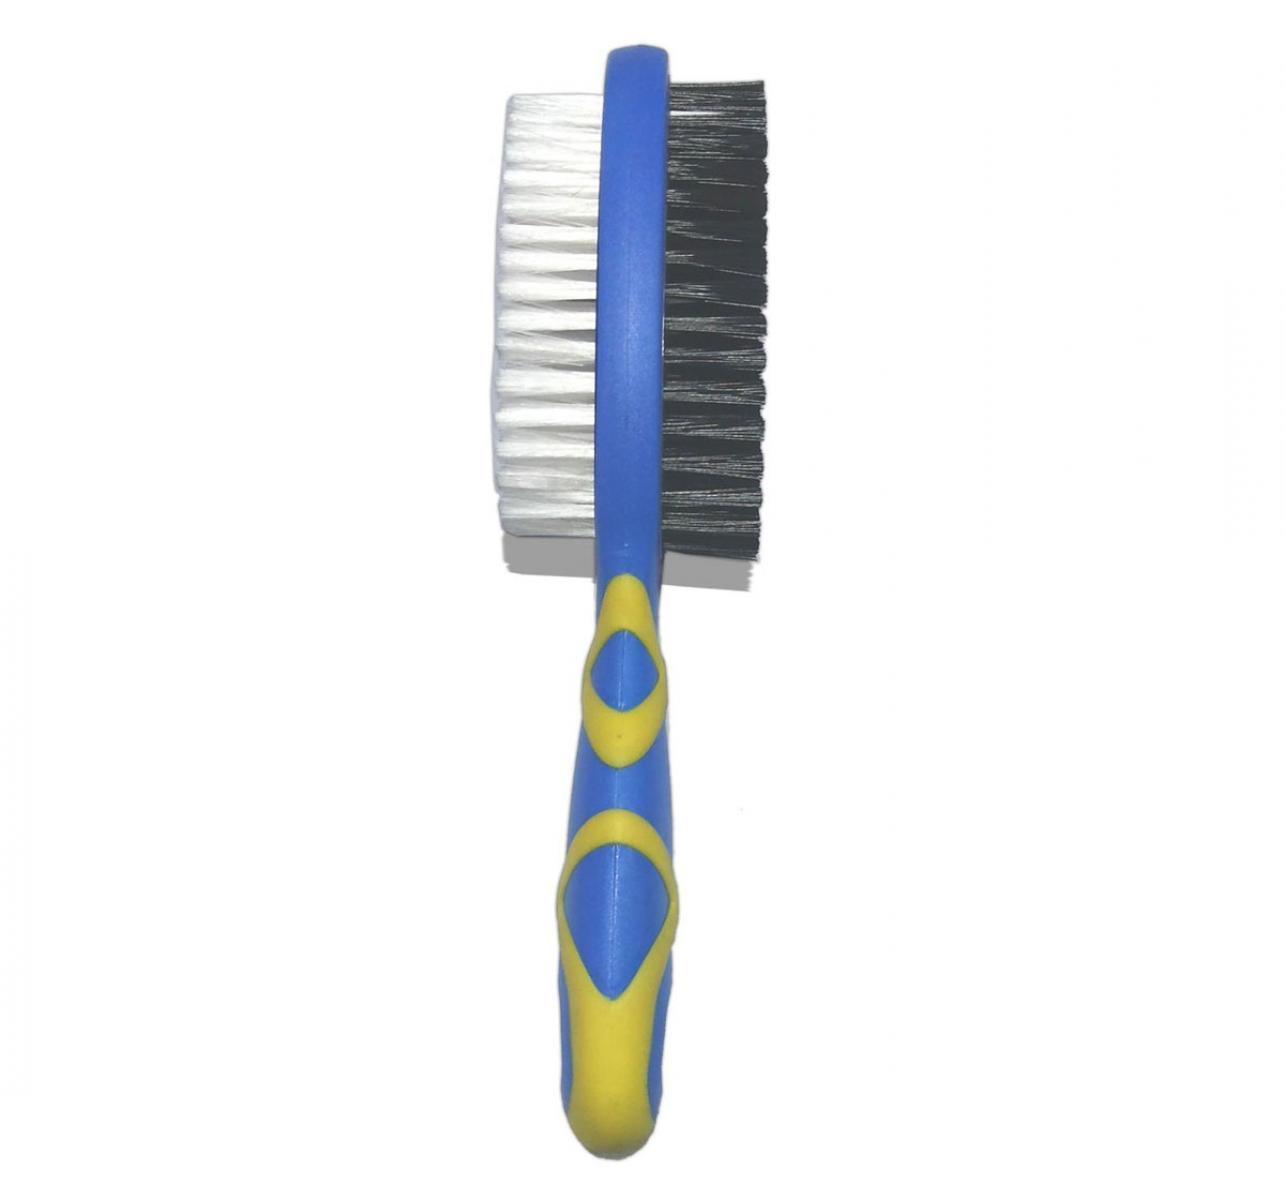 DogSpot Double Bristle Brush - Medium